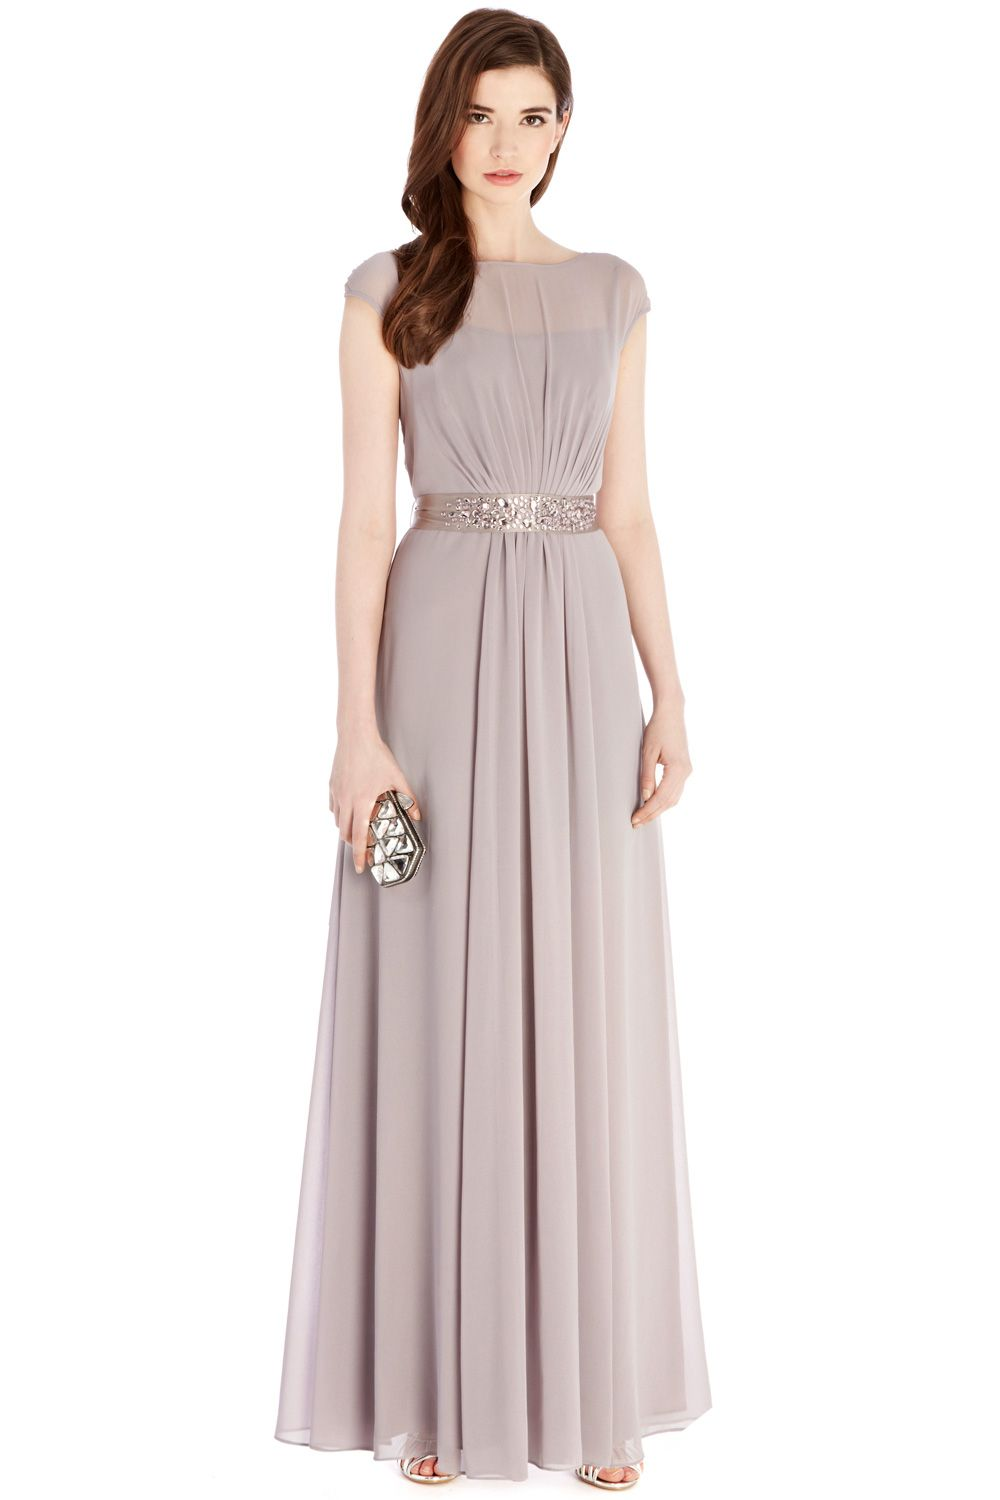 Grey Bridesmaid Dress with embellishment | Greys LORI LEE MAXI ...